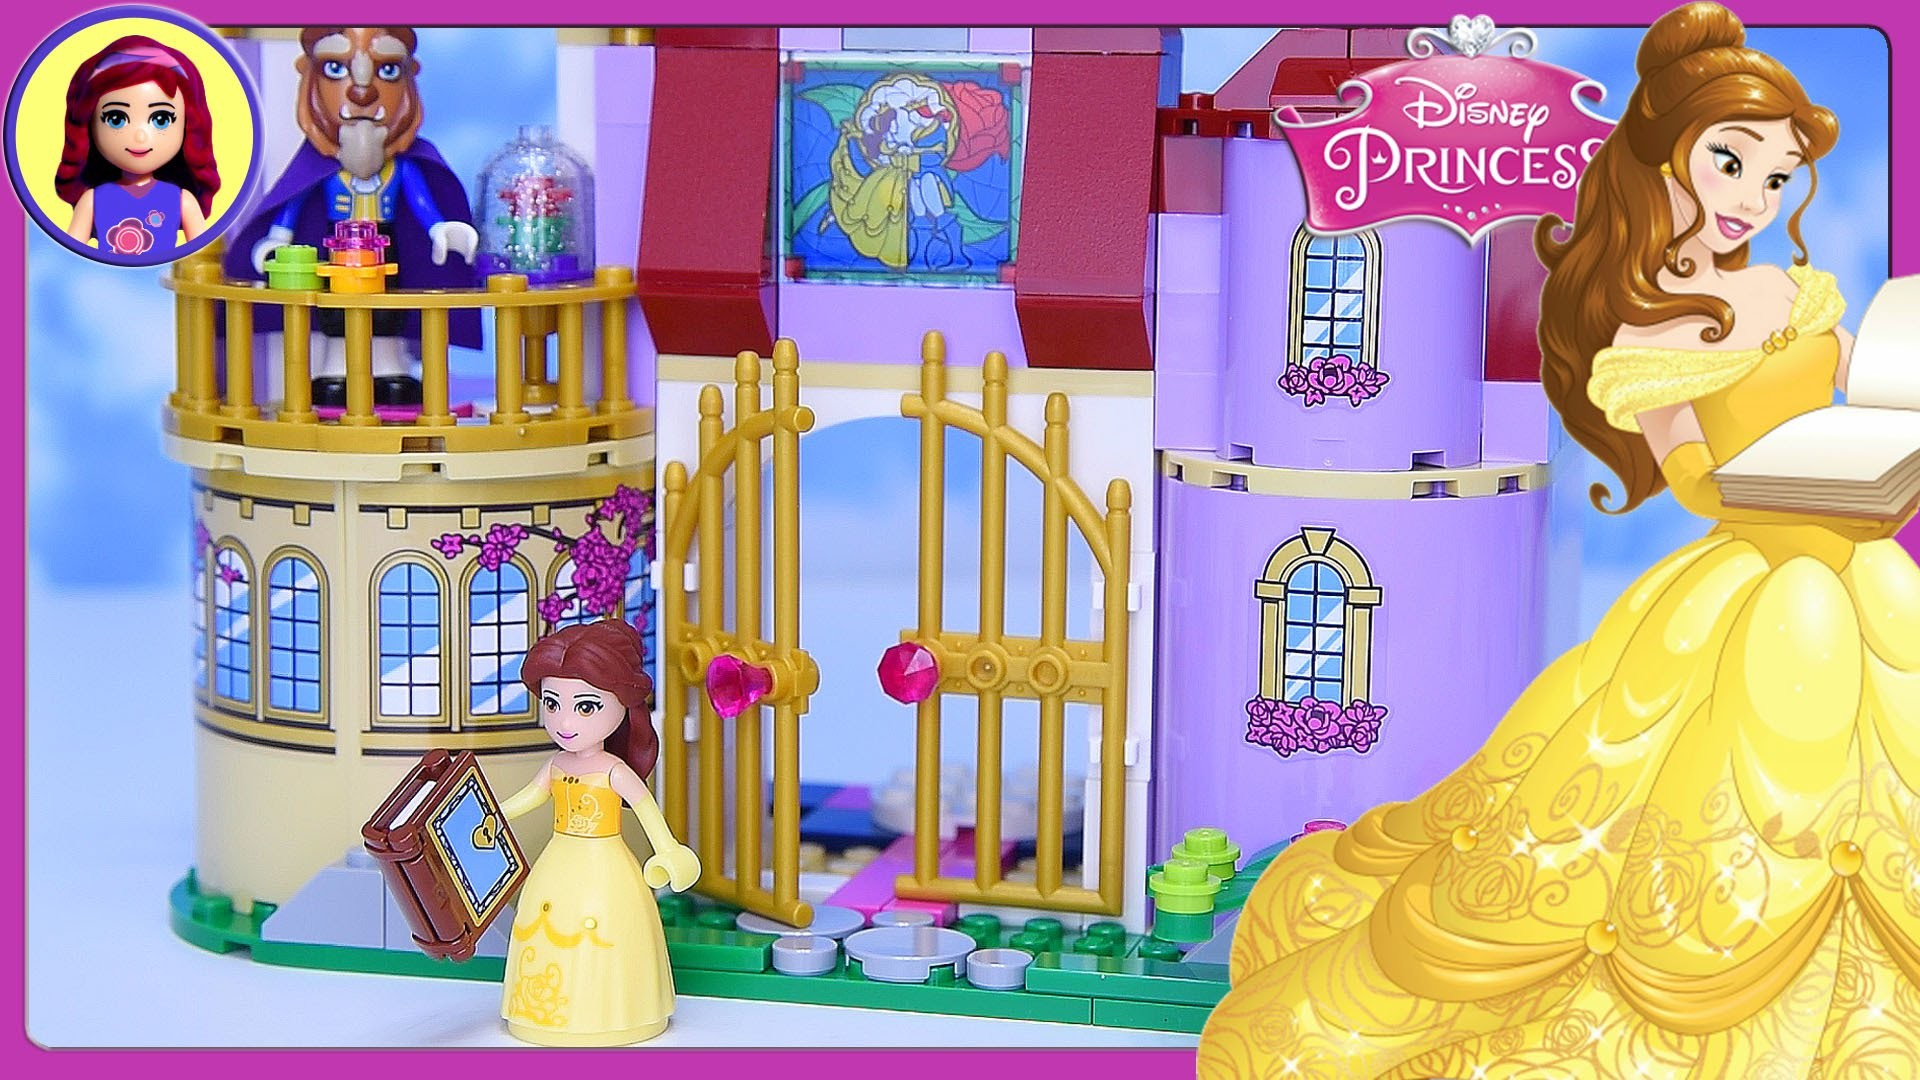 Res: 1920x1080, LEGO Disney Princess Belle's Enchanted Castle Set Build Review Silly Play -  Kids Toys - YouTube